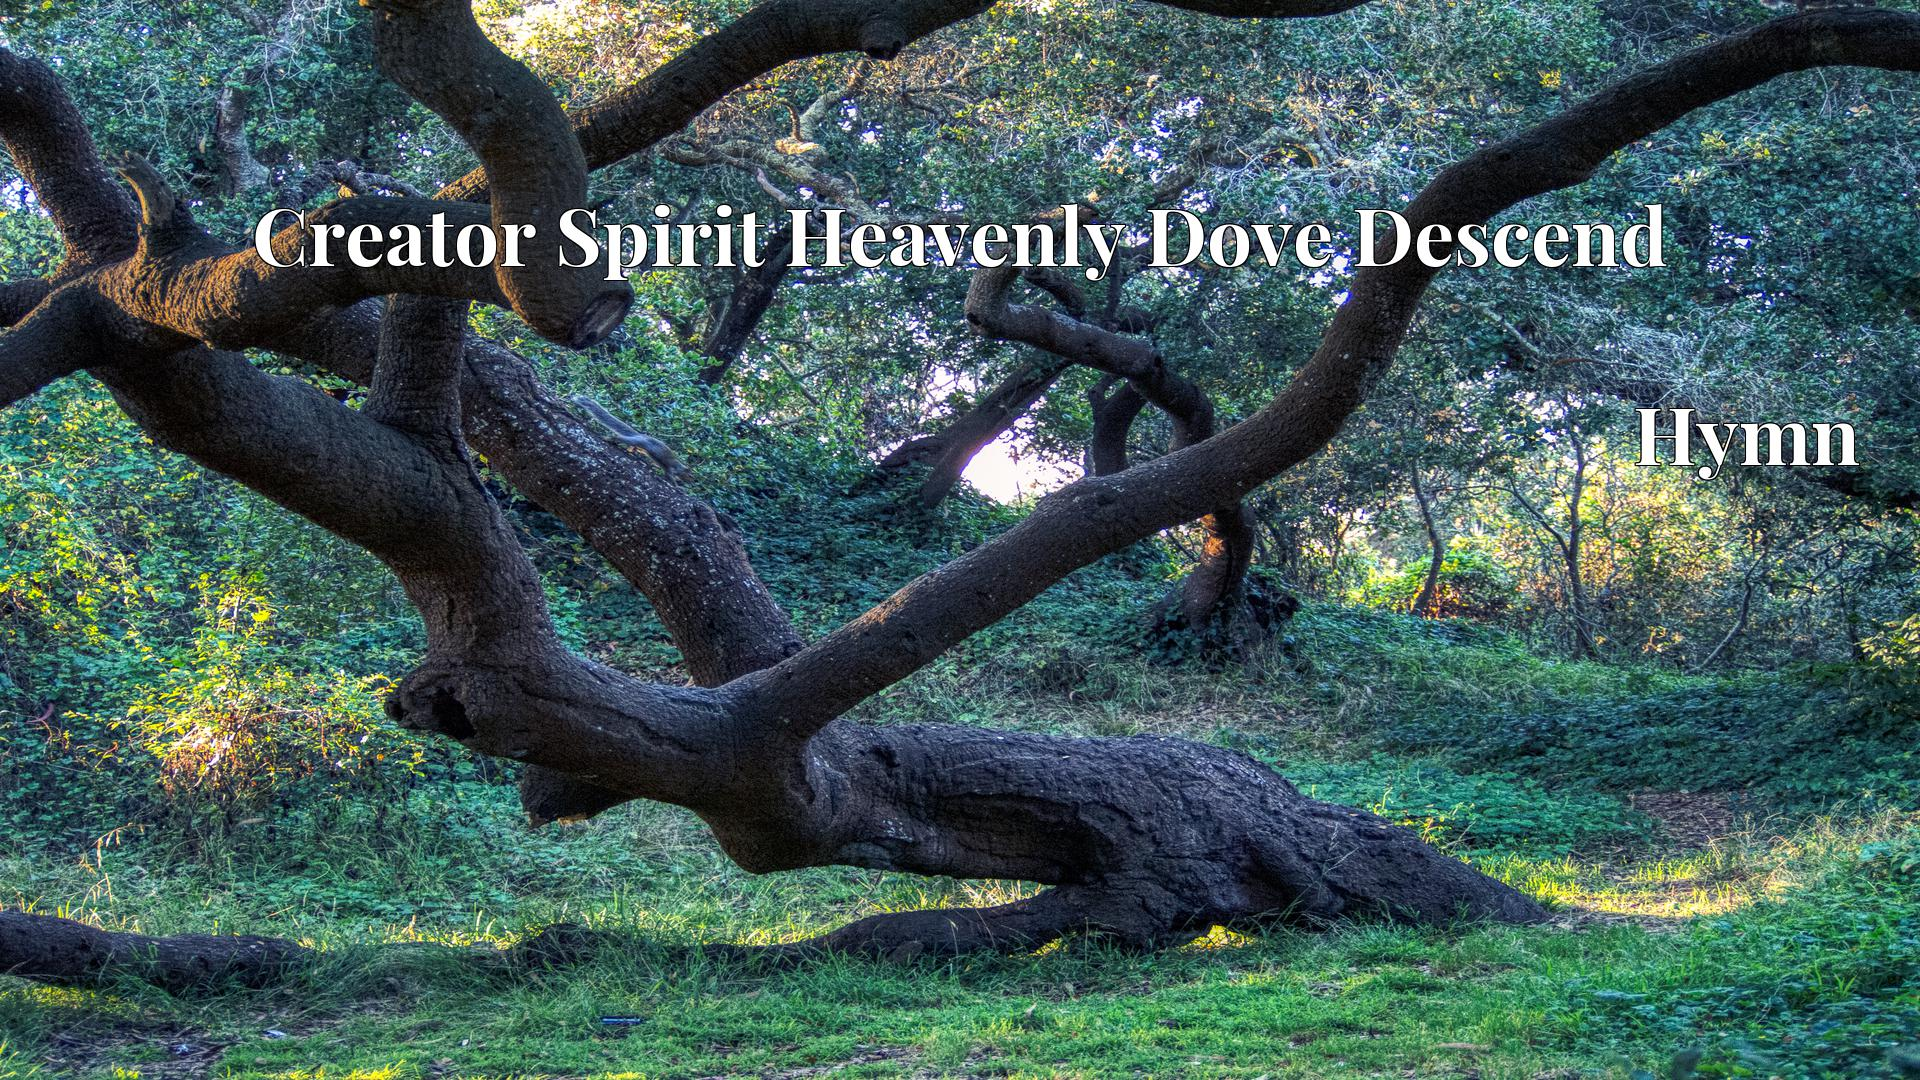 Creator Spirit Heavenly Dove Descend - Hymn